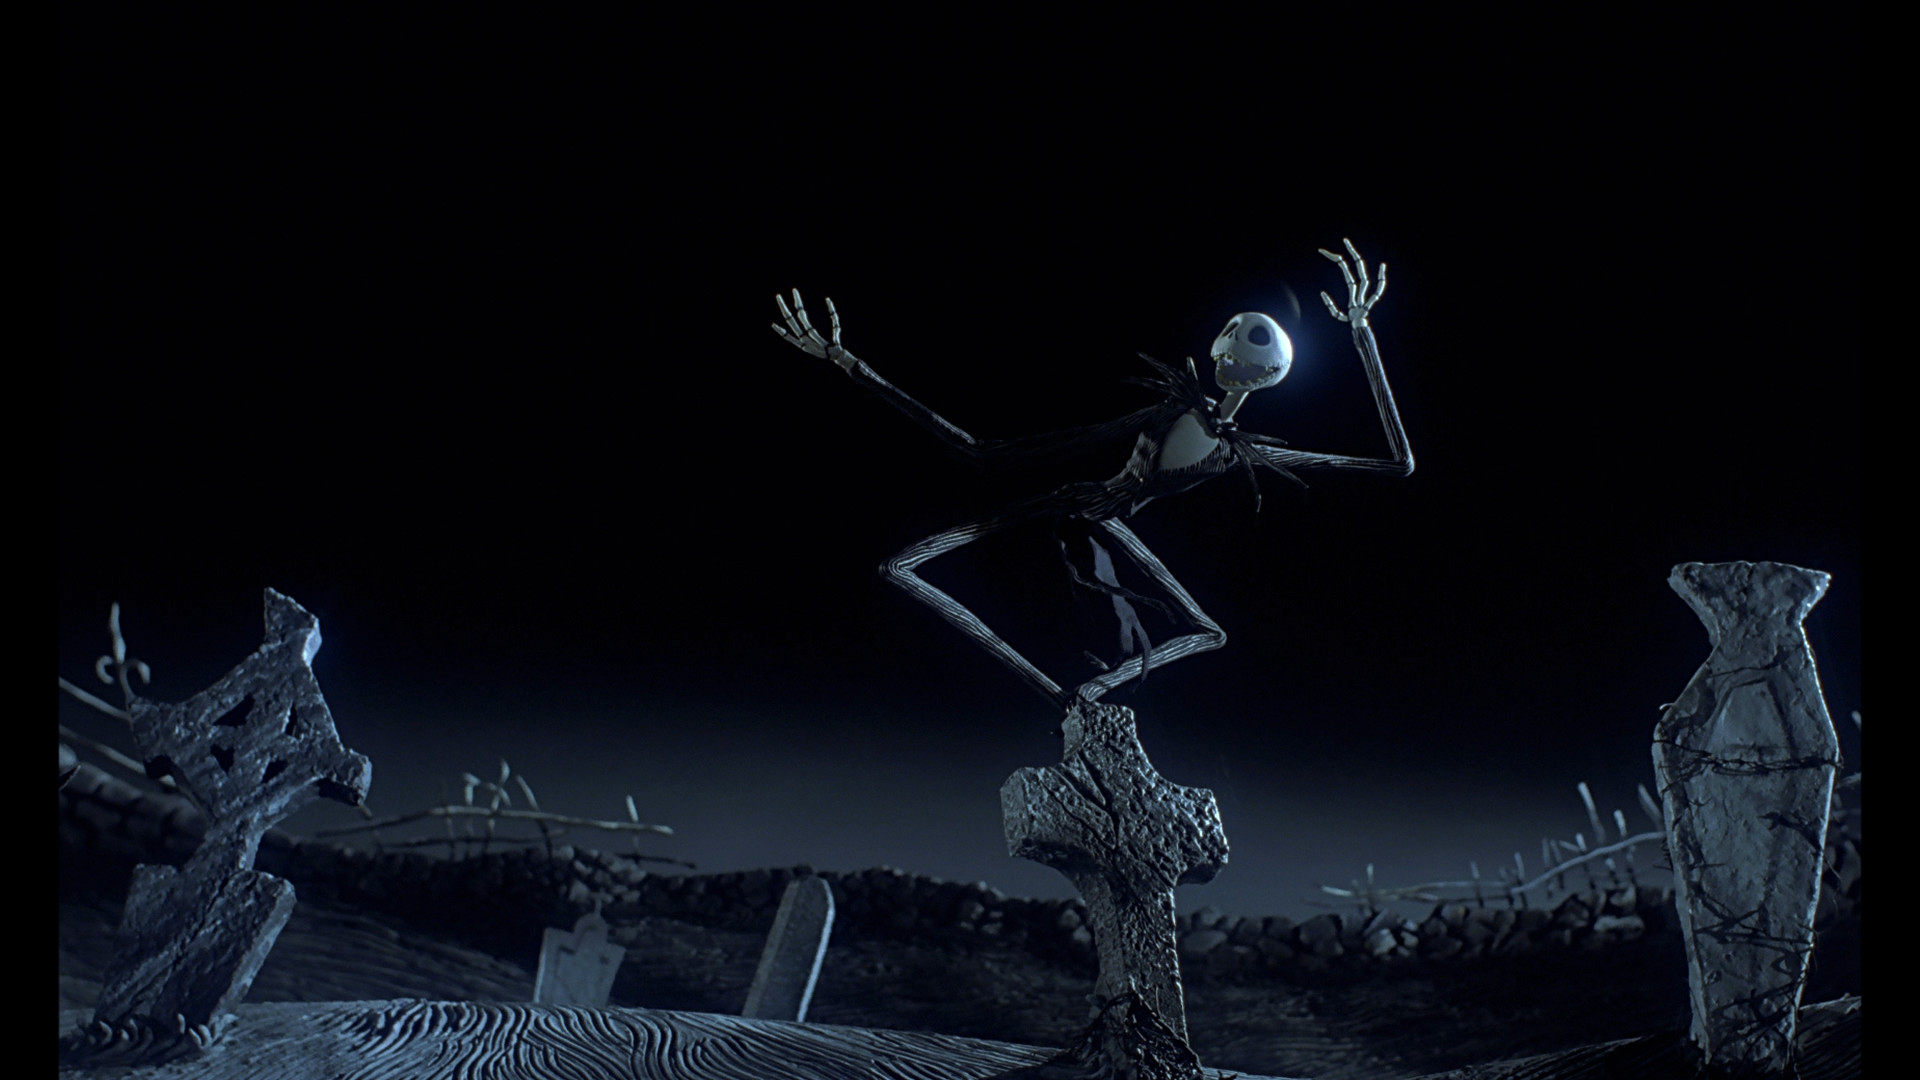 1920x1080 Jack Skellington - The Nightmare Before Christmas wallpaper